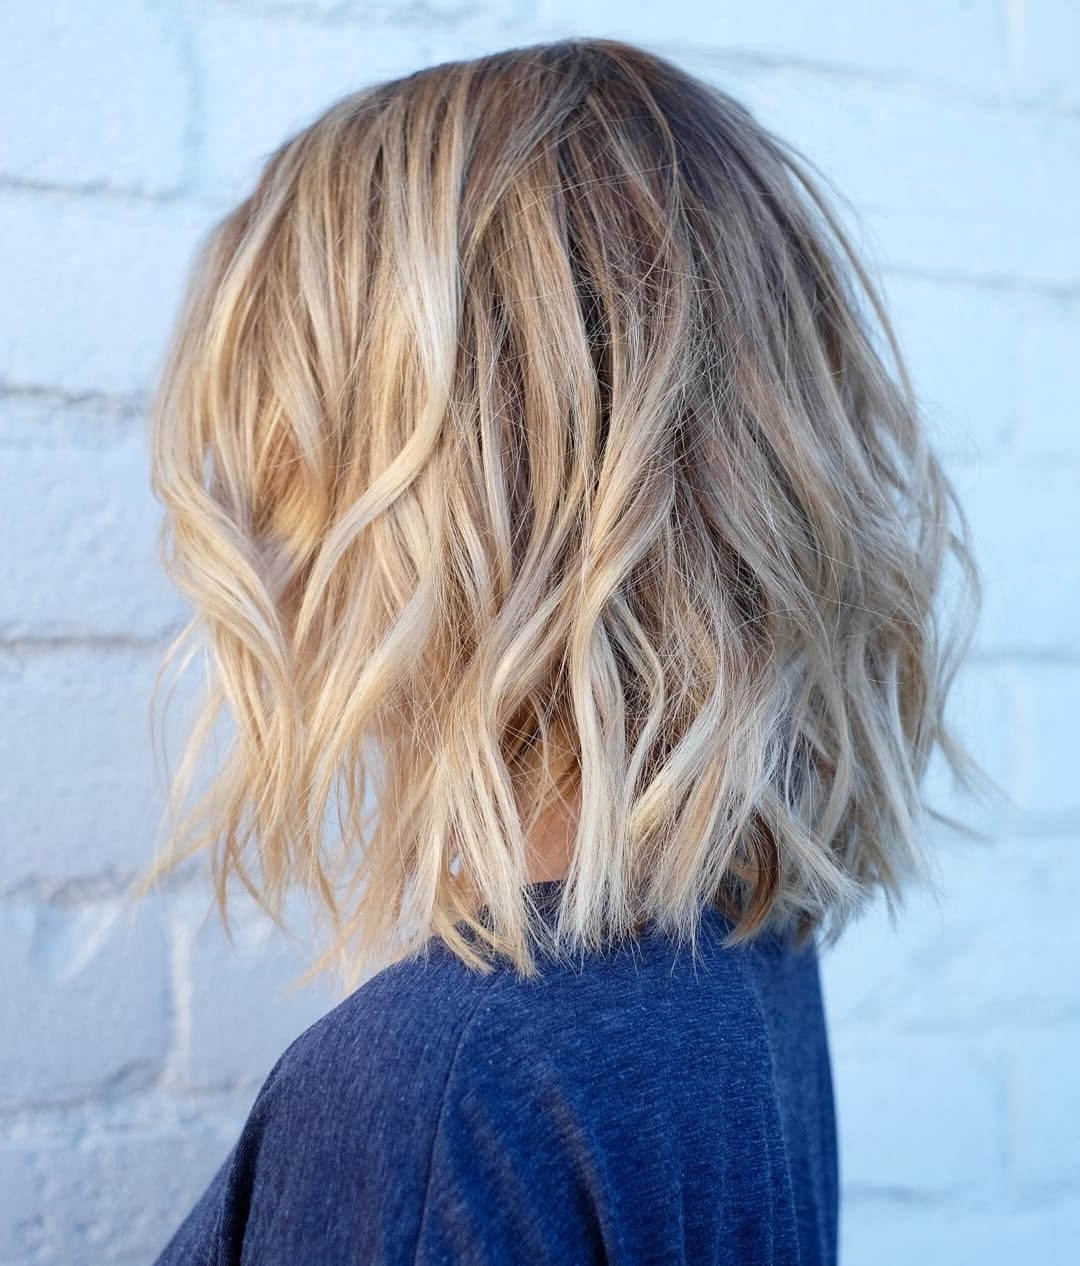 Best And Newest Subtle Dirty Blonde Angled Bob Hairstyles With 50 Fresh Short Blonde Hair Ideas To Update Your Style In  (View 5 of 20)